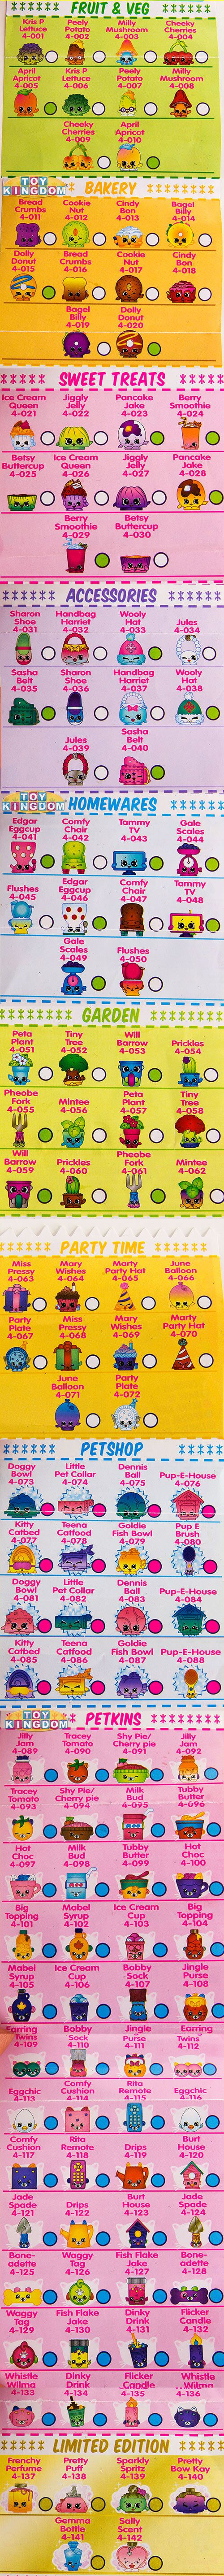 Shopkins Season 4 Checklist